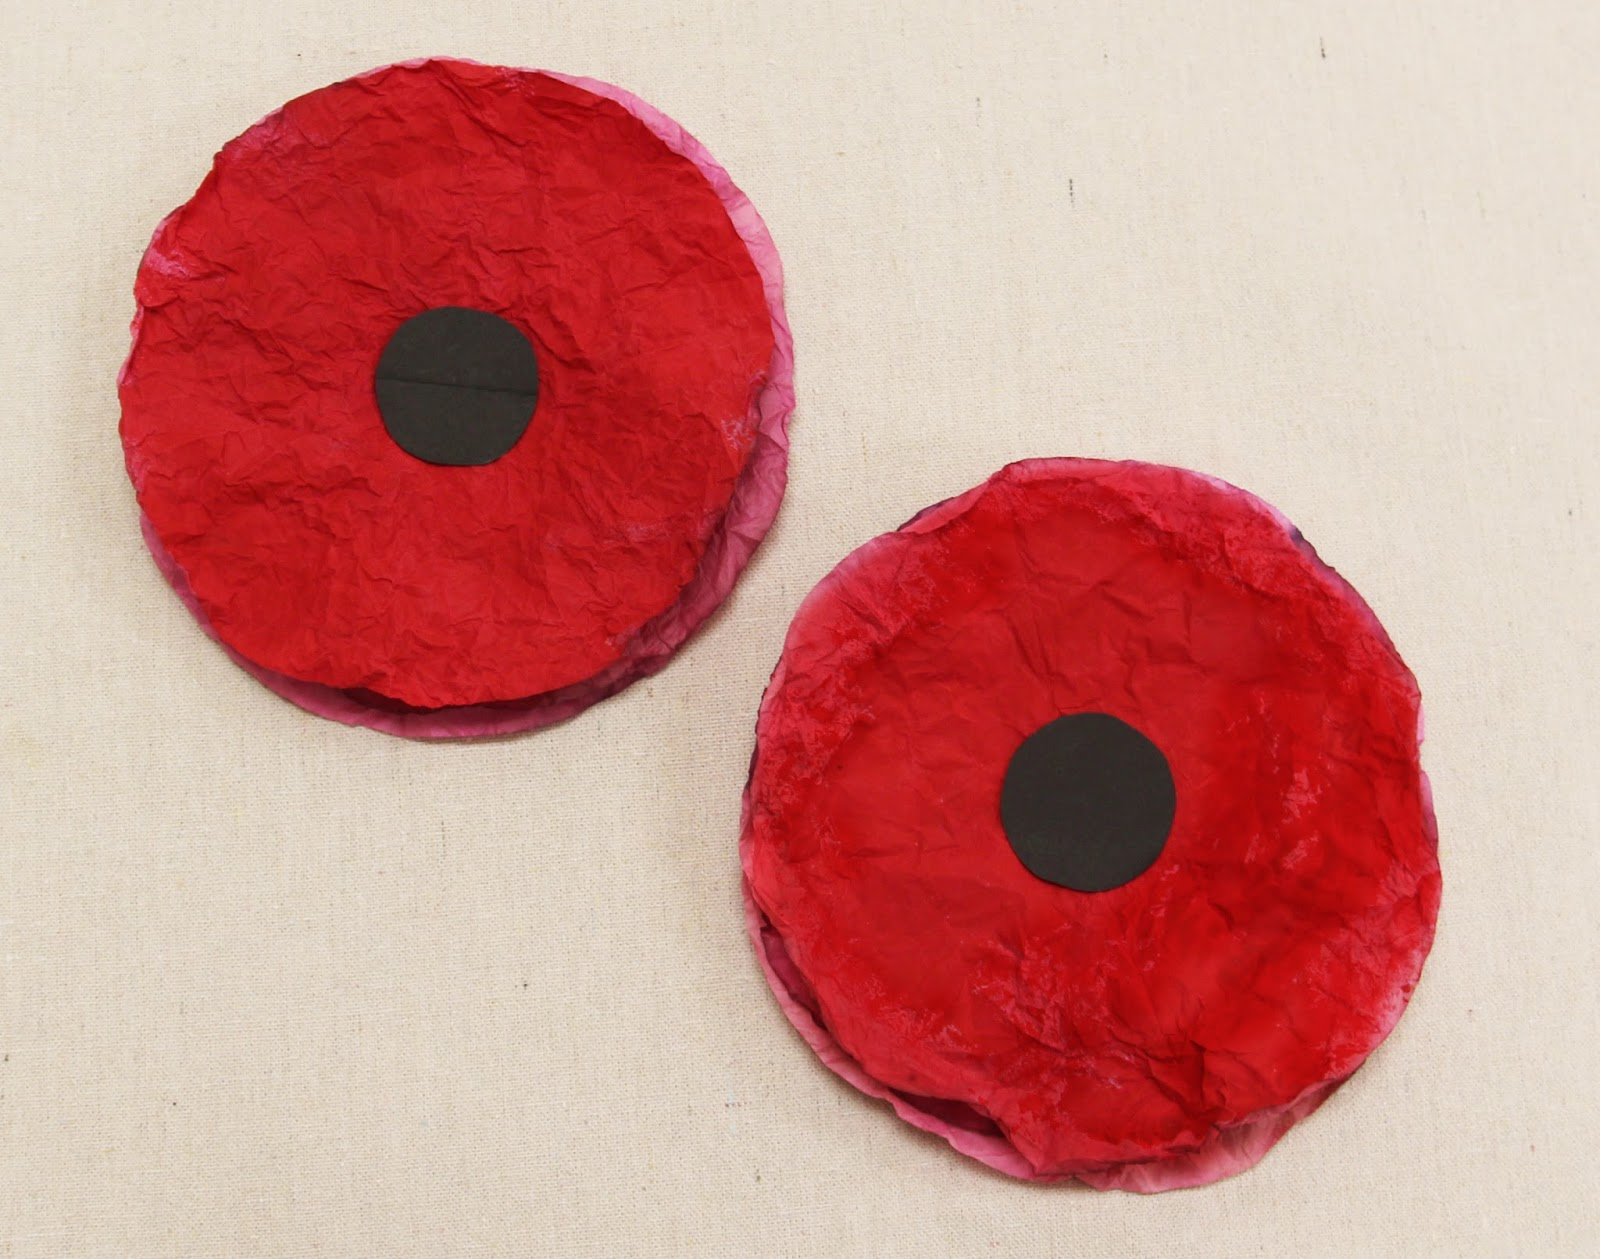 NAMC Montessor Rememberance Veterans Day Activities. Painted coffee filter poppies